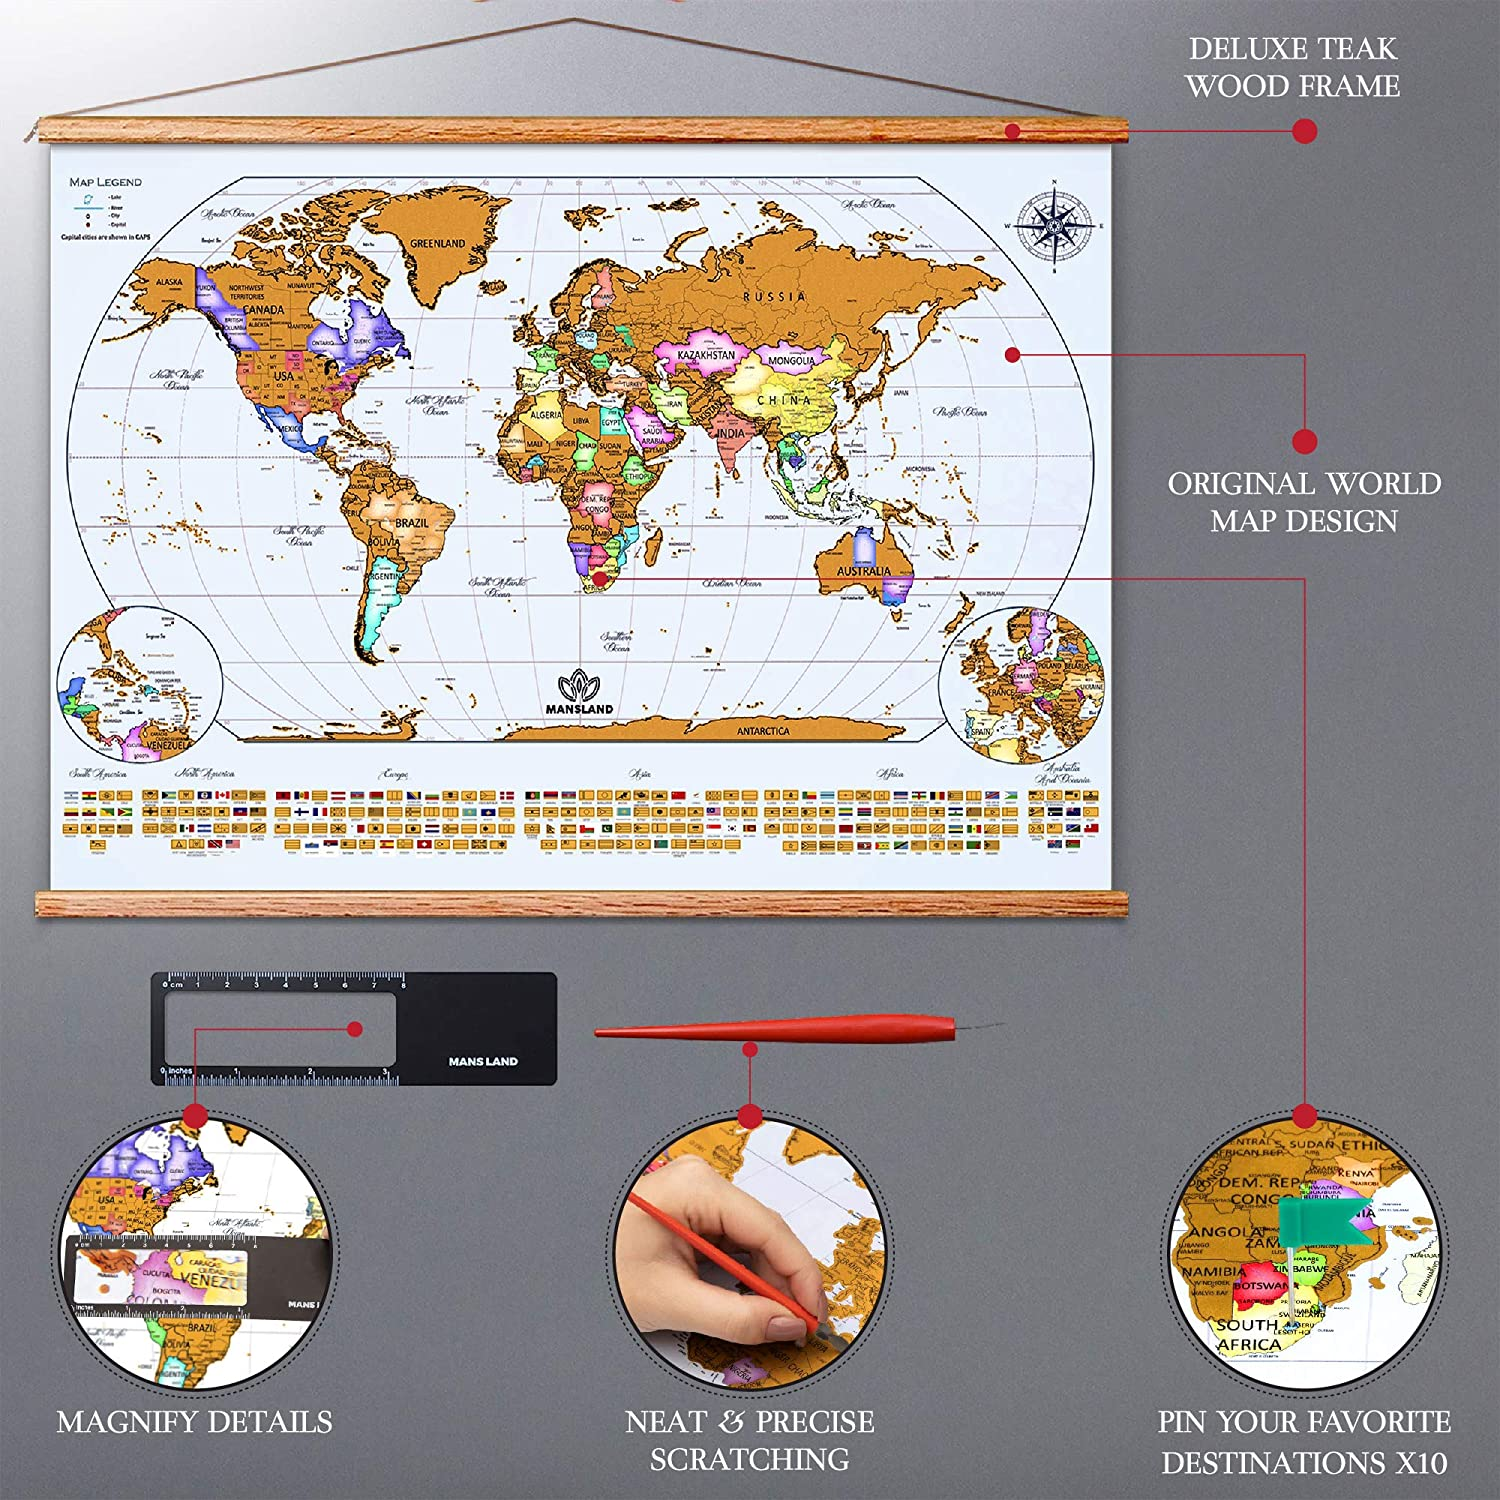 Mansland Scratch The World Travel Map Includes Teak Wood Frame Scratch Off World Map Poster Premium Wall Art Gifts for Travelers Complete Accessories Set /& All Country Flags